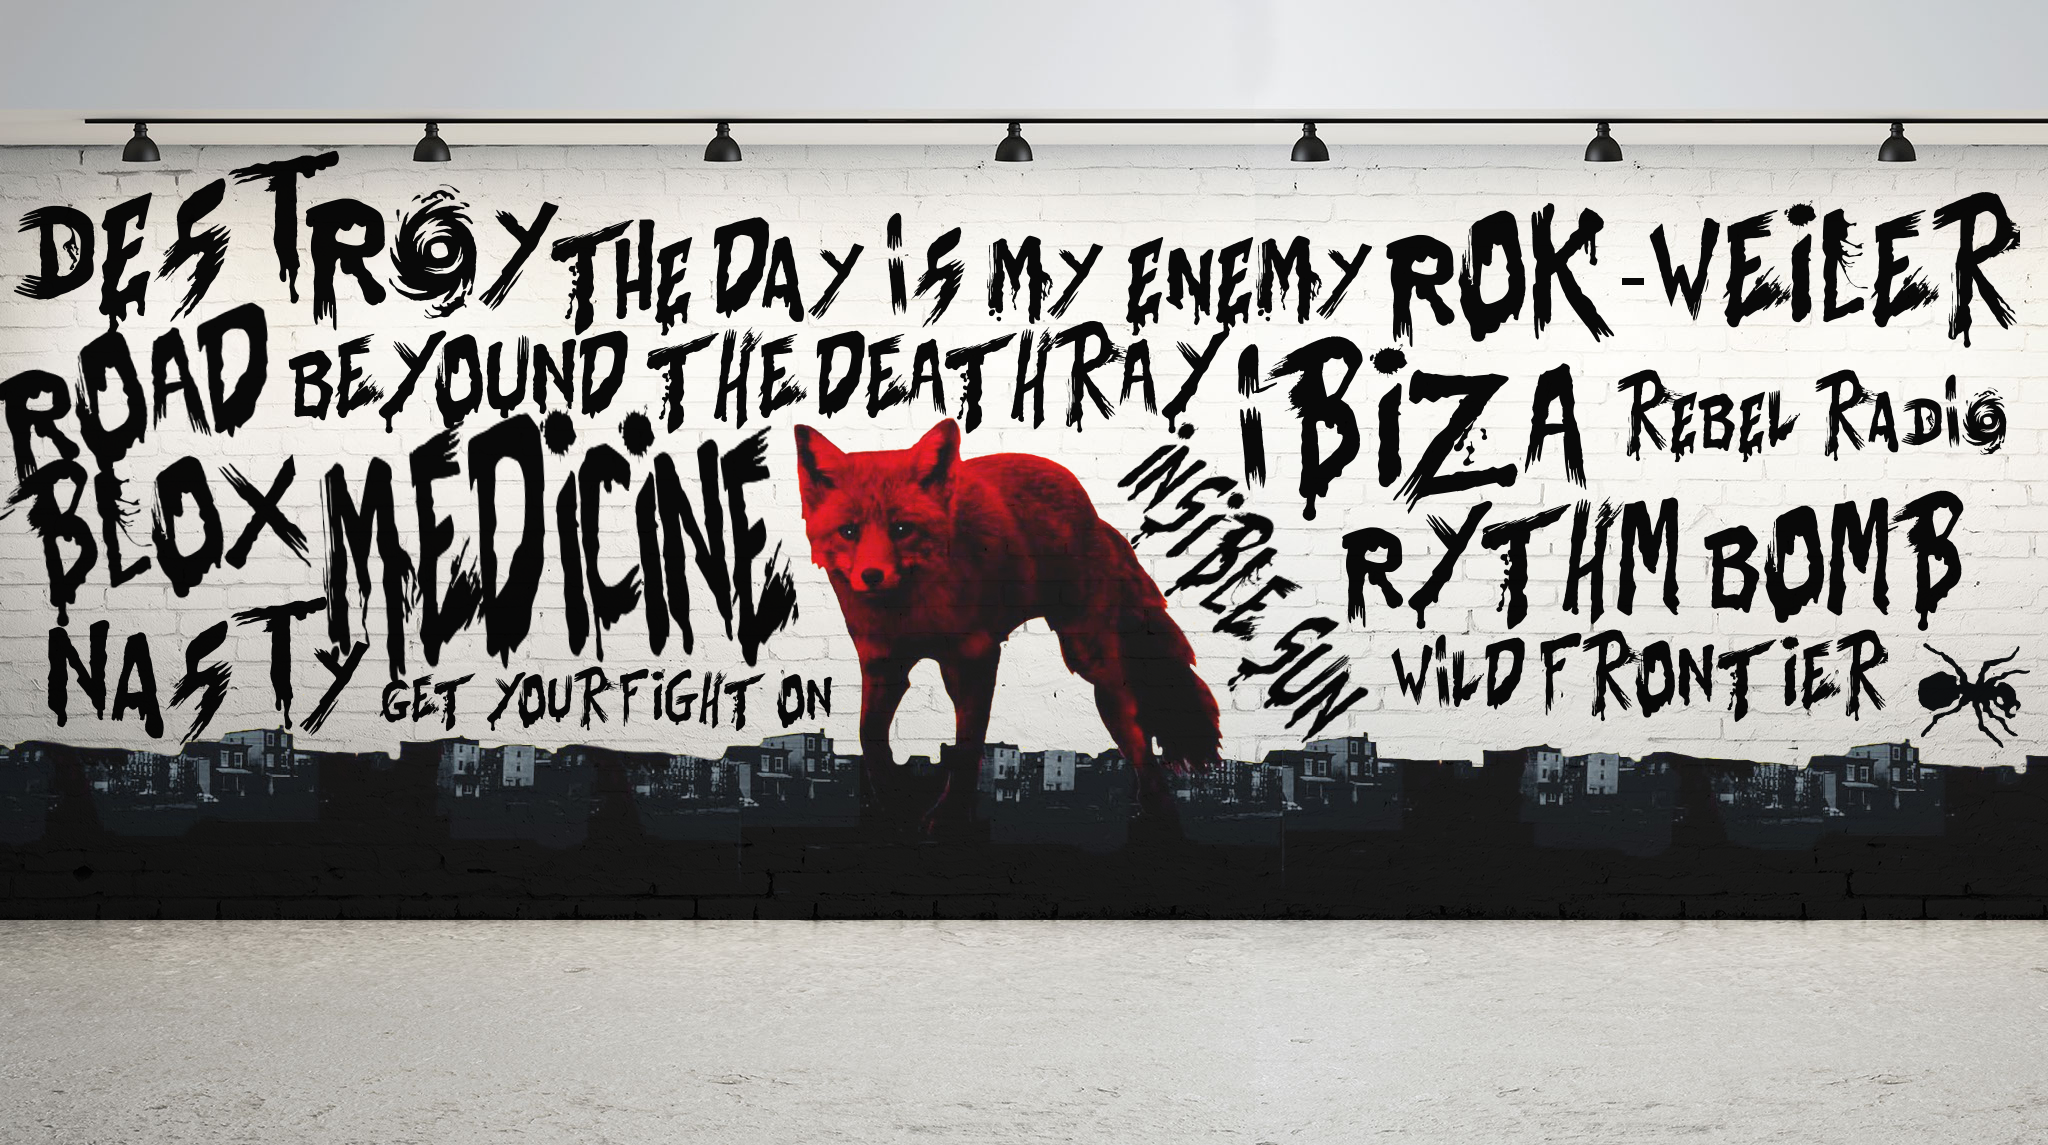 The day is my enemy the prodigy скачать